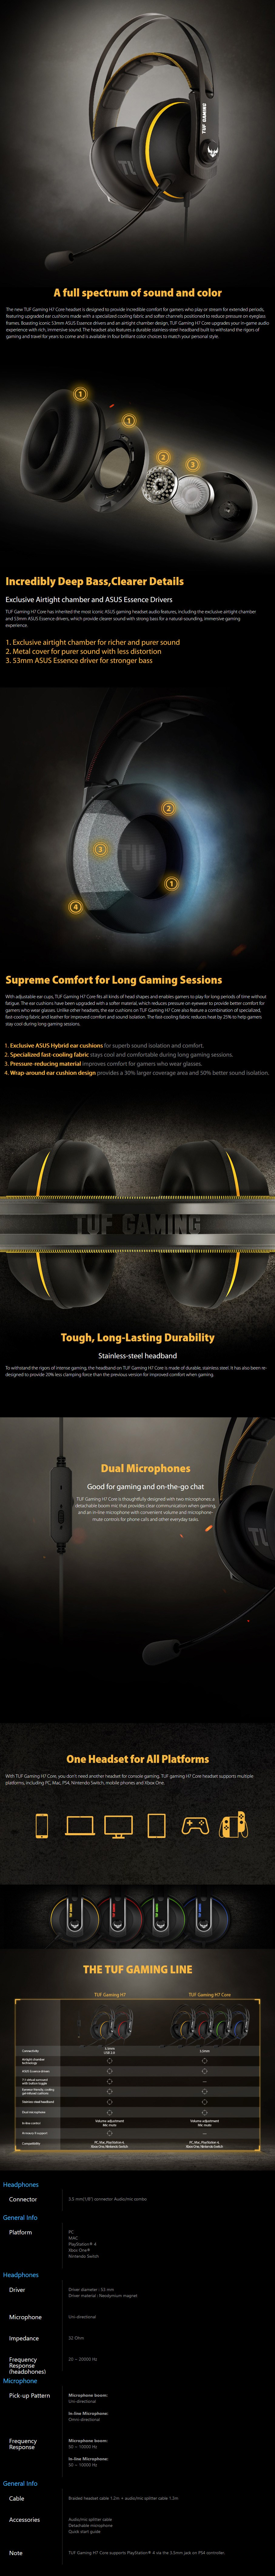 ASUS TUF Gaming H7 Core Gaming Headset - Overview 1